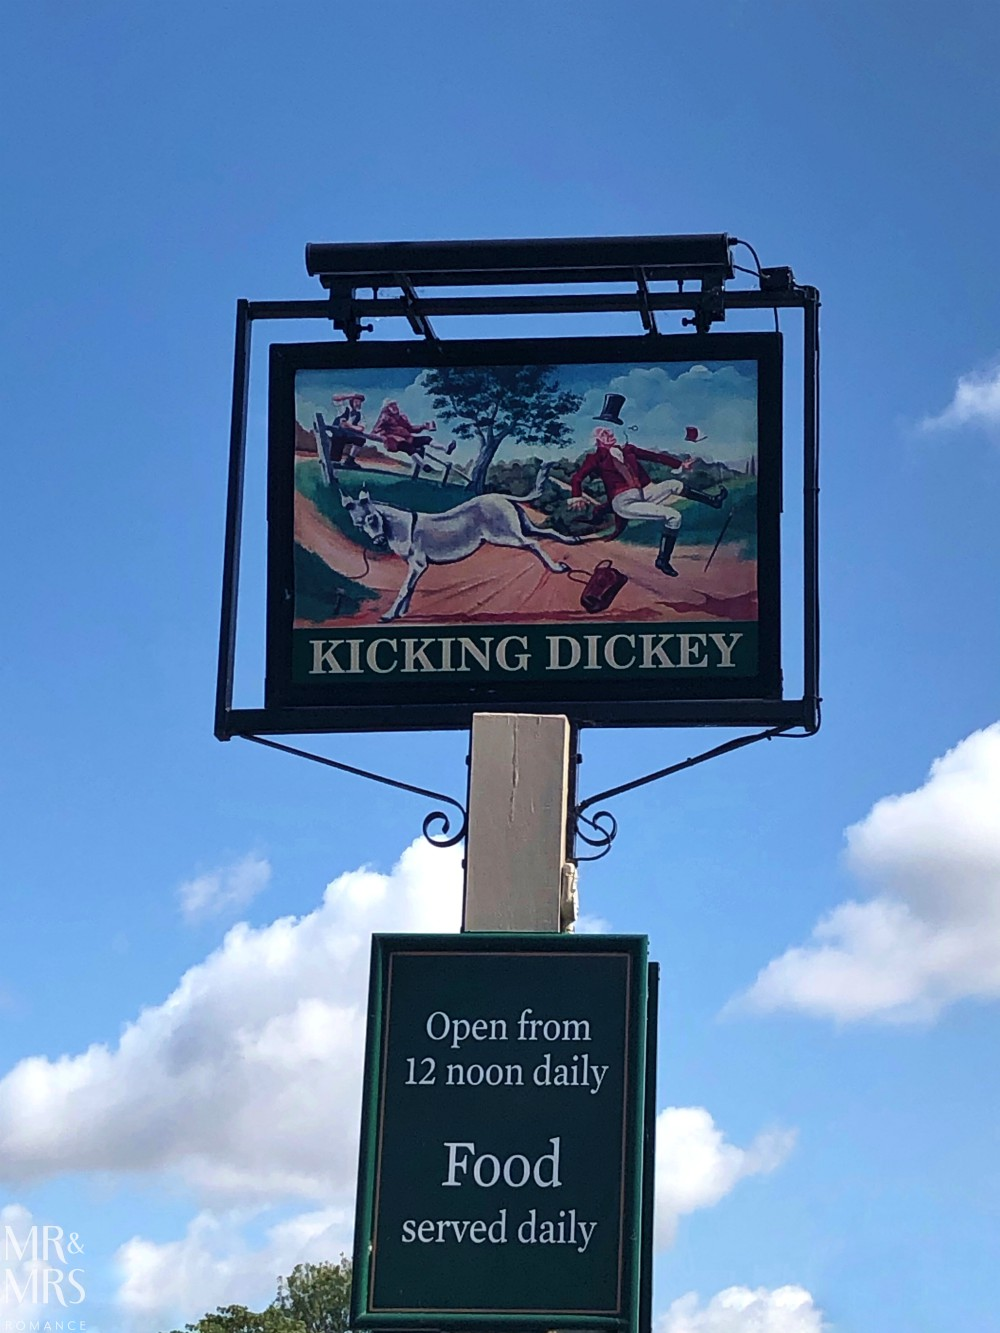 Great Dunmow Flitch Trials - The Kicking Dickey